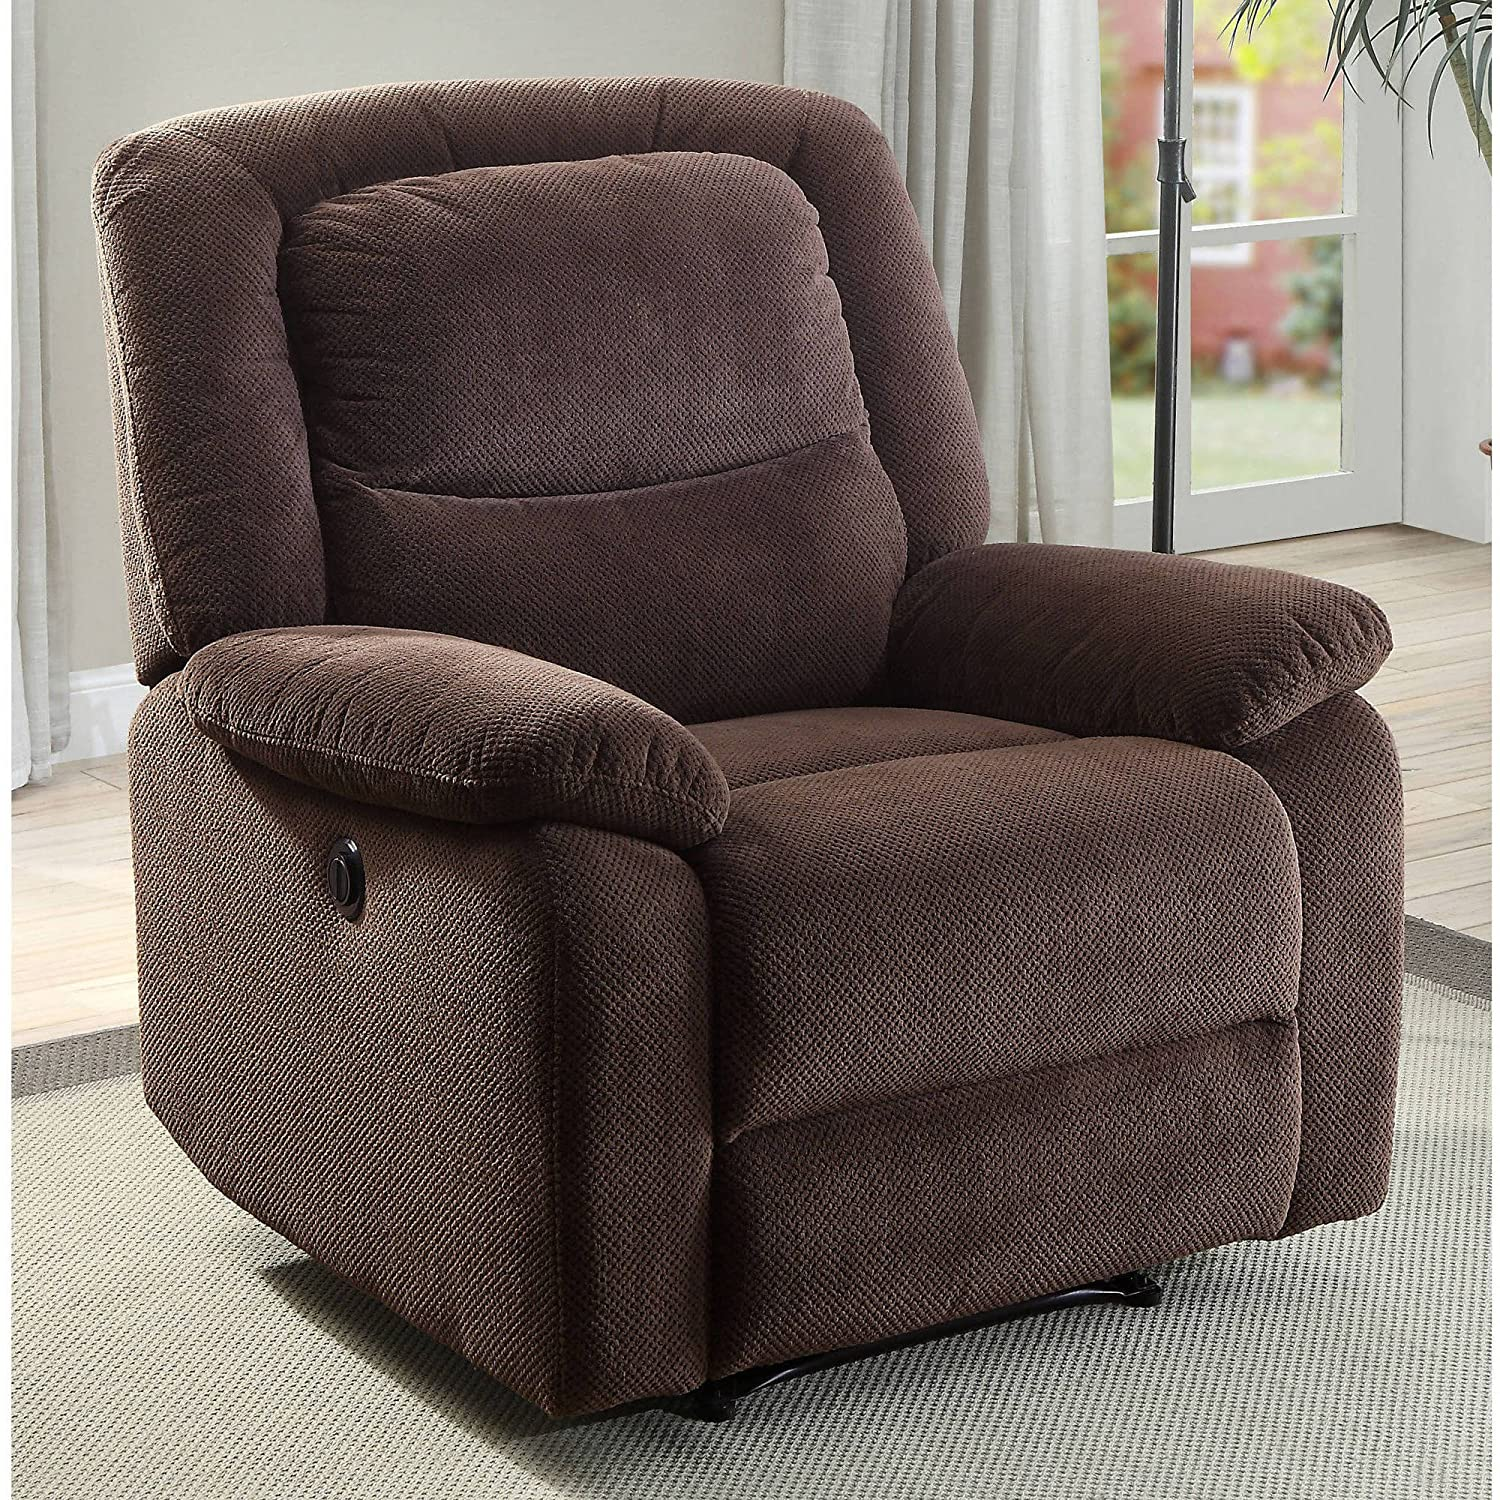 Best Recliners for Elderly Reviews: Top 5 for Seniors in ...